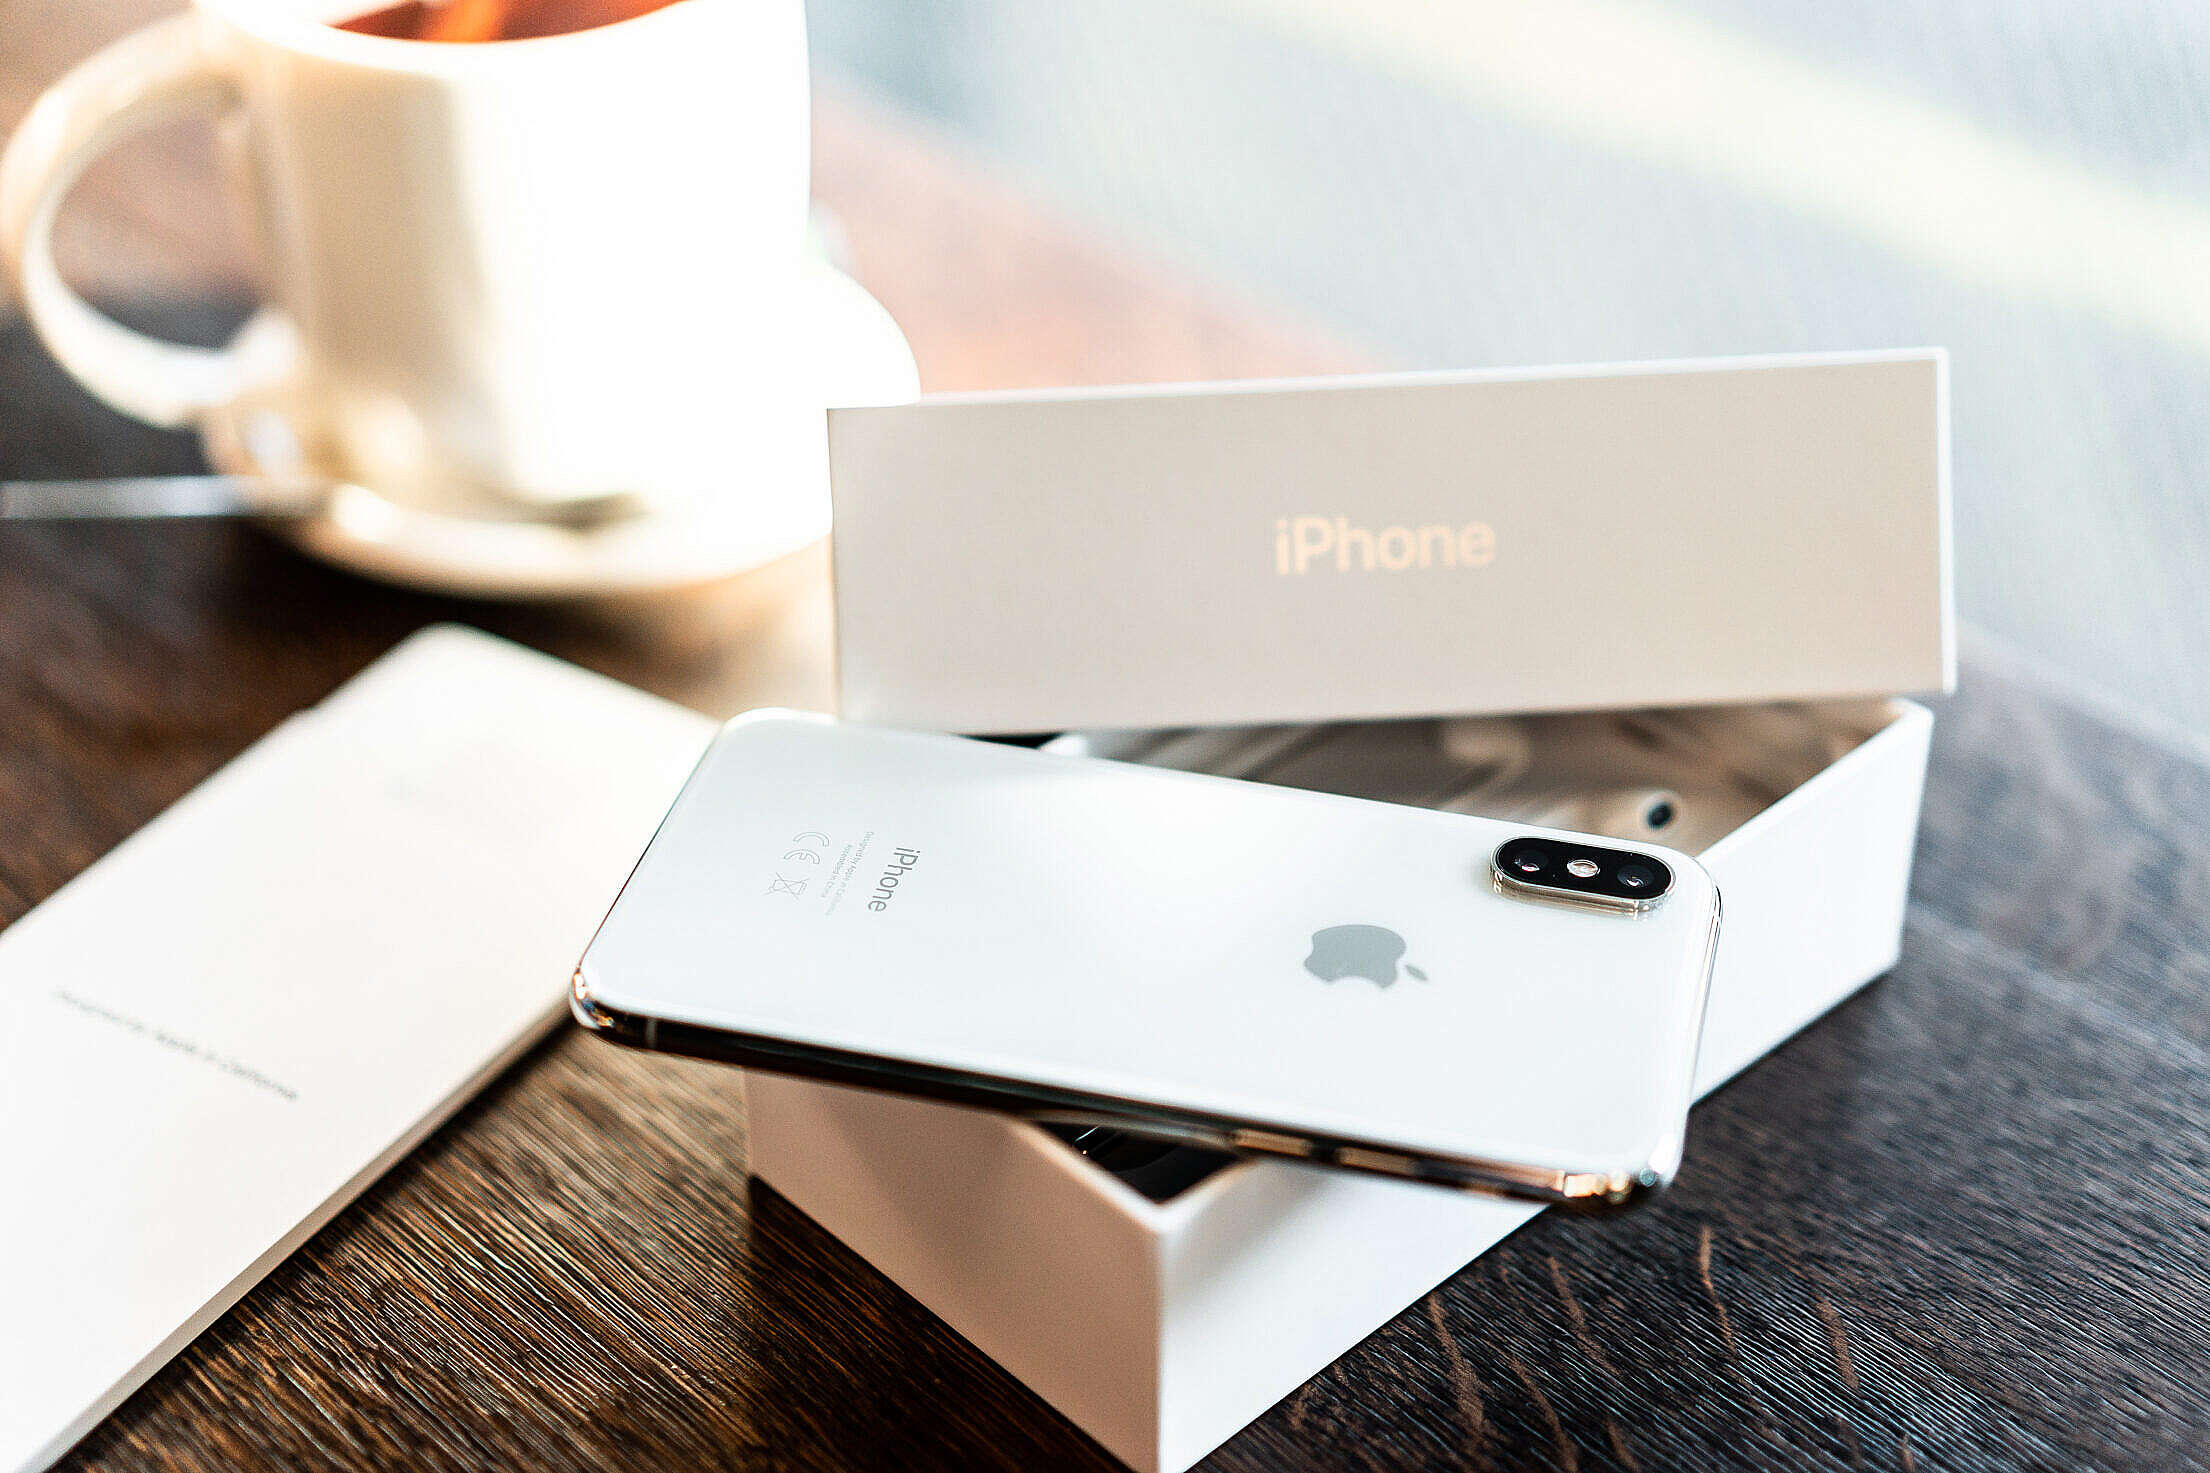 iPhone XS Unboxing Free Stock Photo